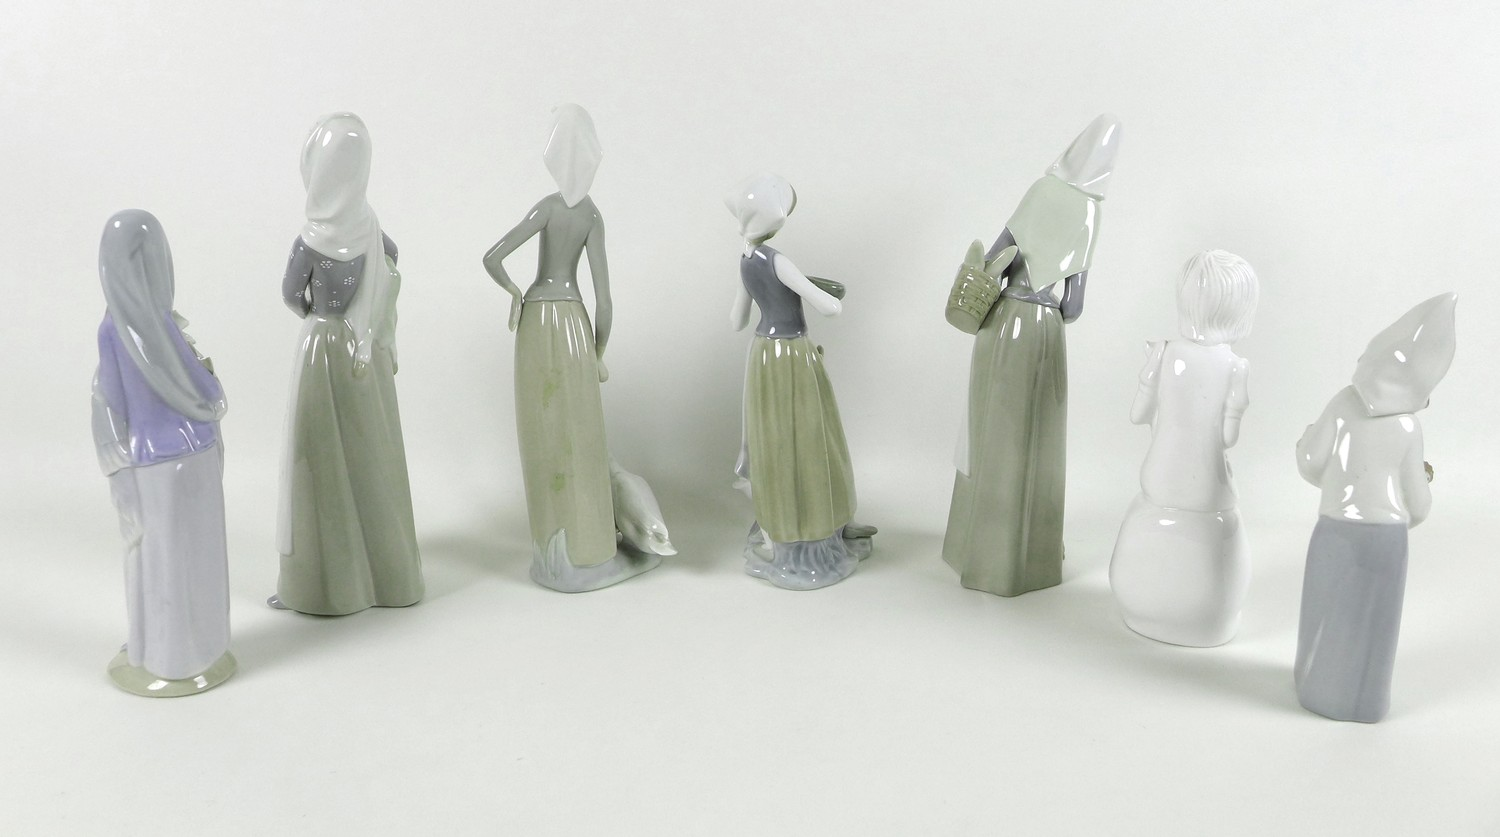 A group of six Lladro figurines, comprising Girl with Lamb, number 4584, designed by Antonio Ruiz, - Image 2 of 3